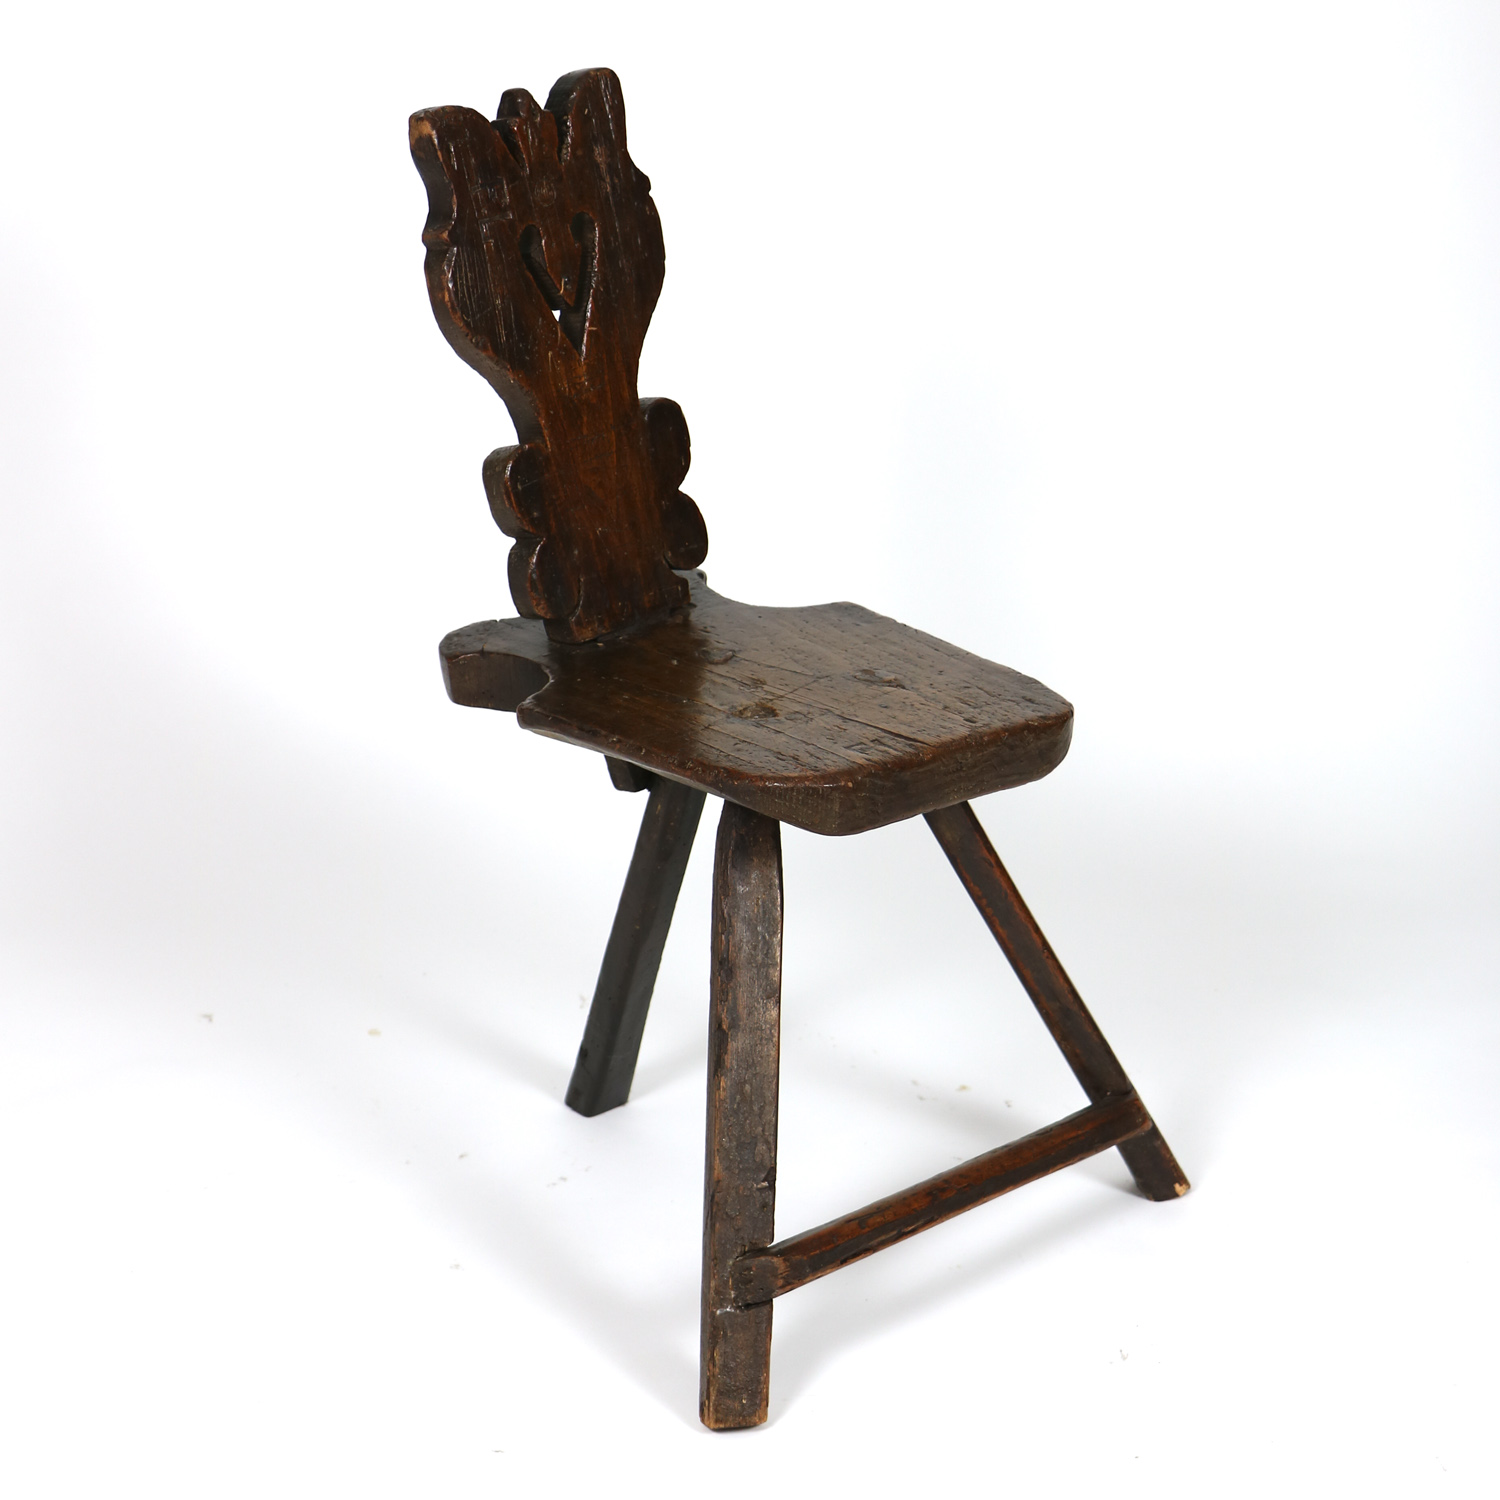 Primitive 3 Legged Chair 415 355 1690